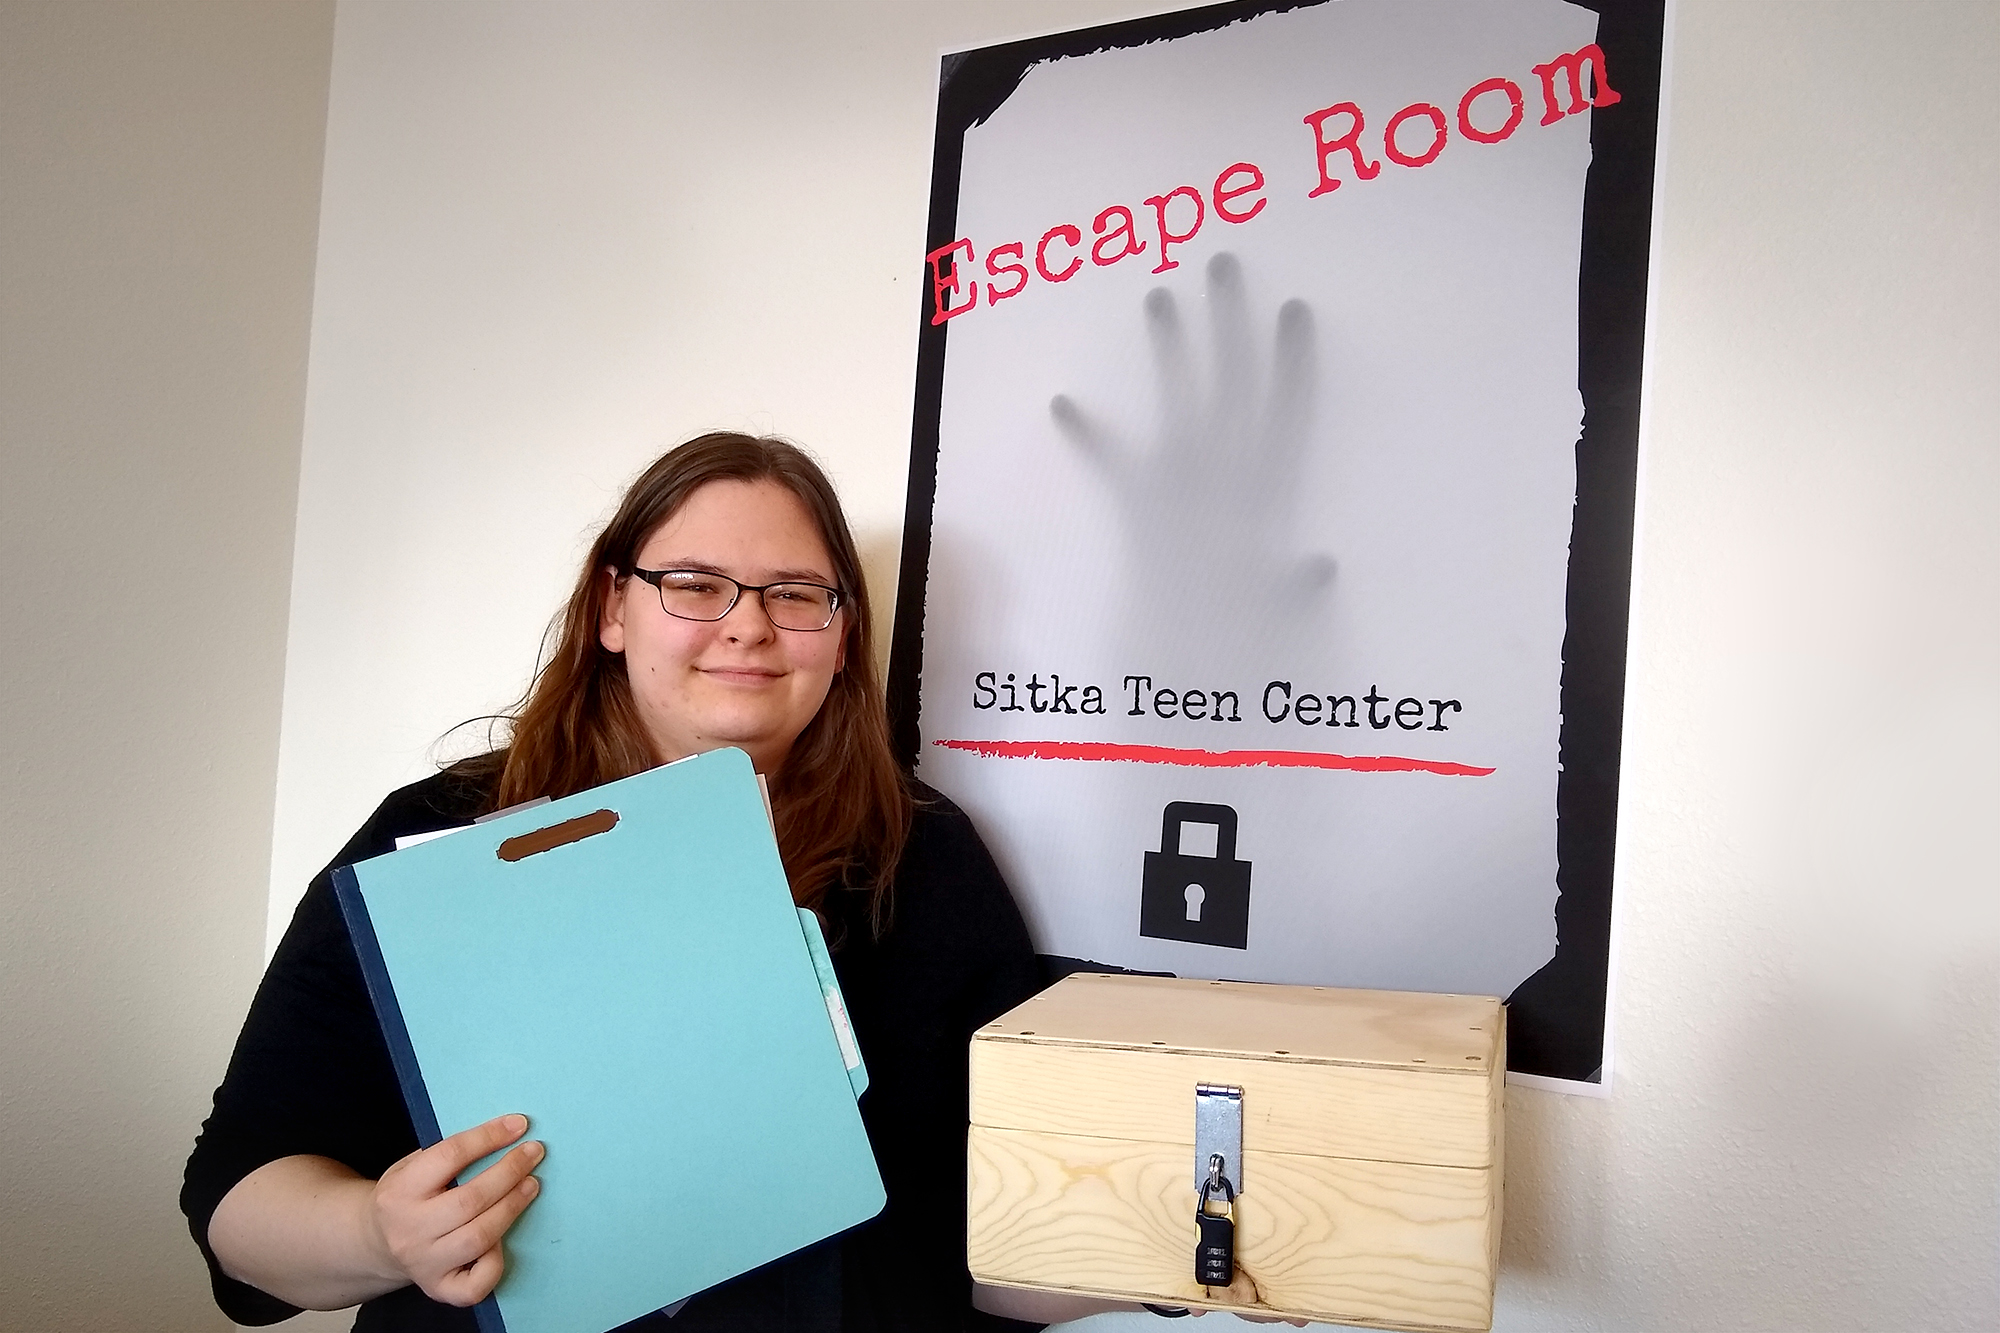 Event organizer Gabriella Barile holds up a folder and locked, wooden box from the hospital-themed escape room.